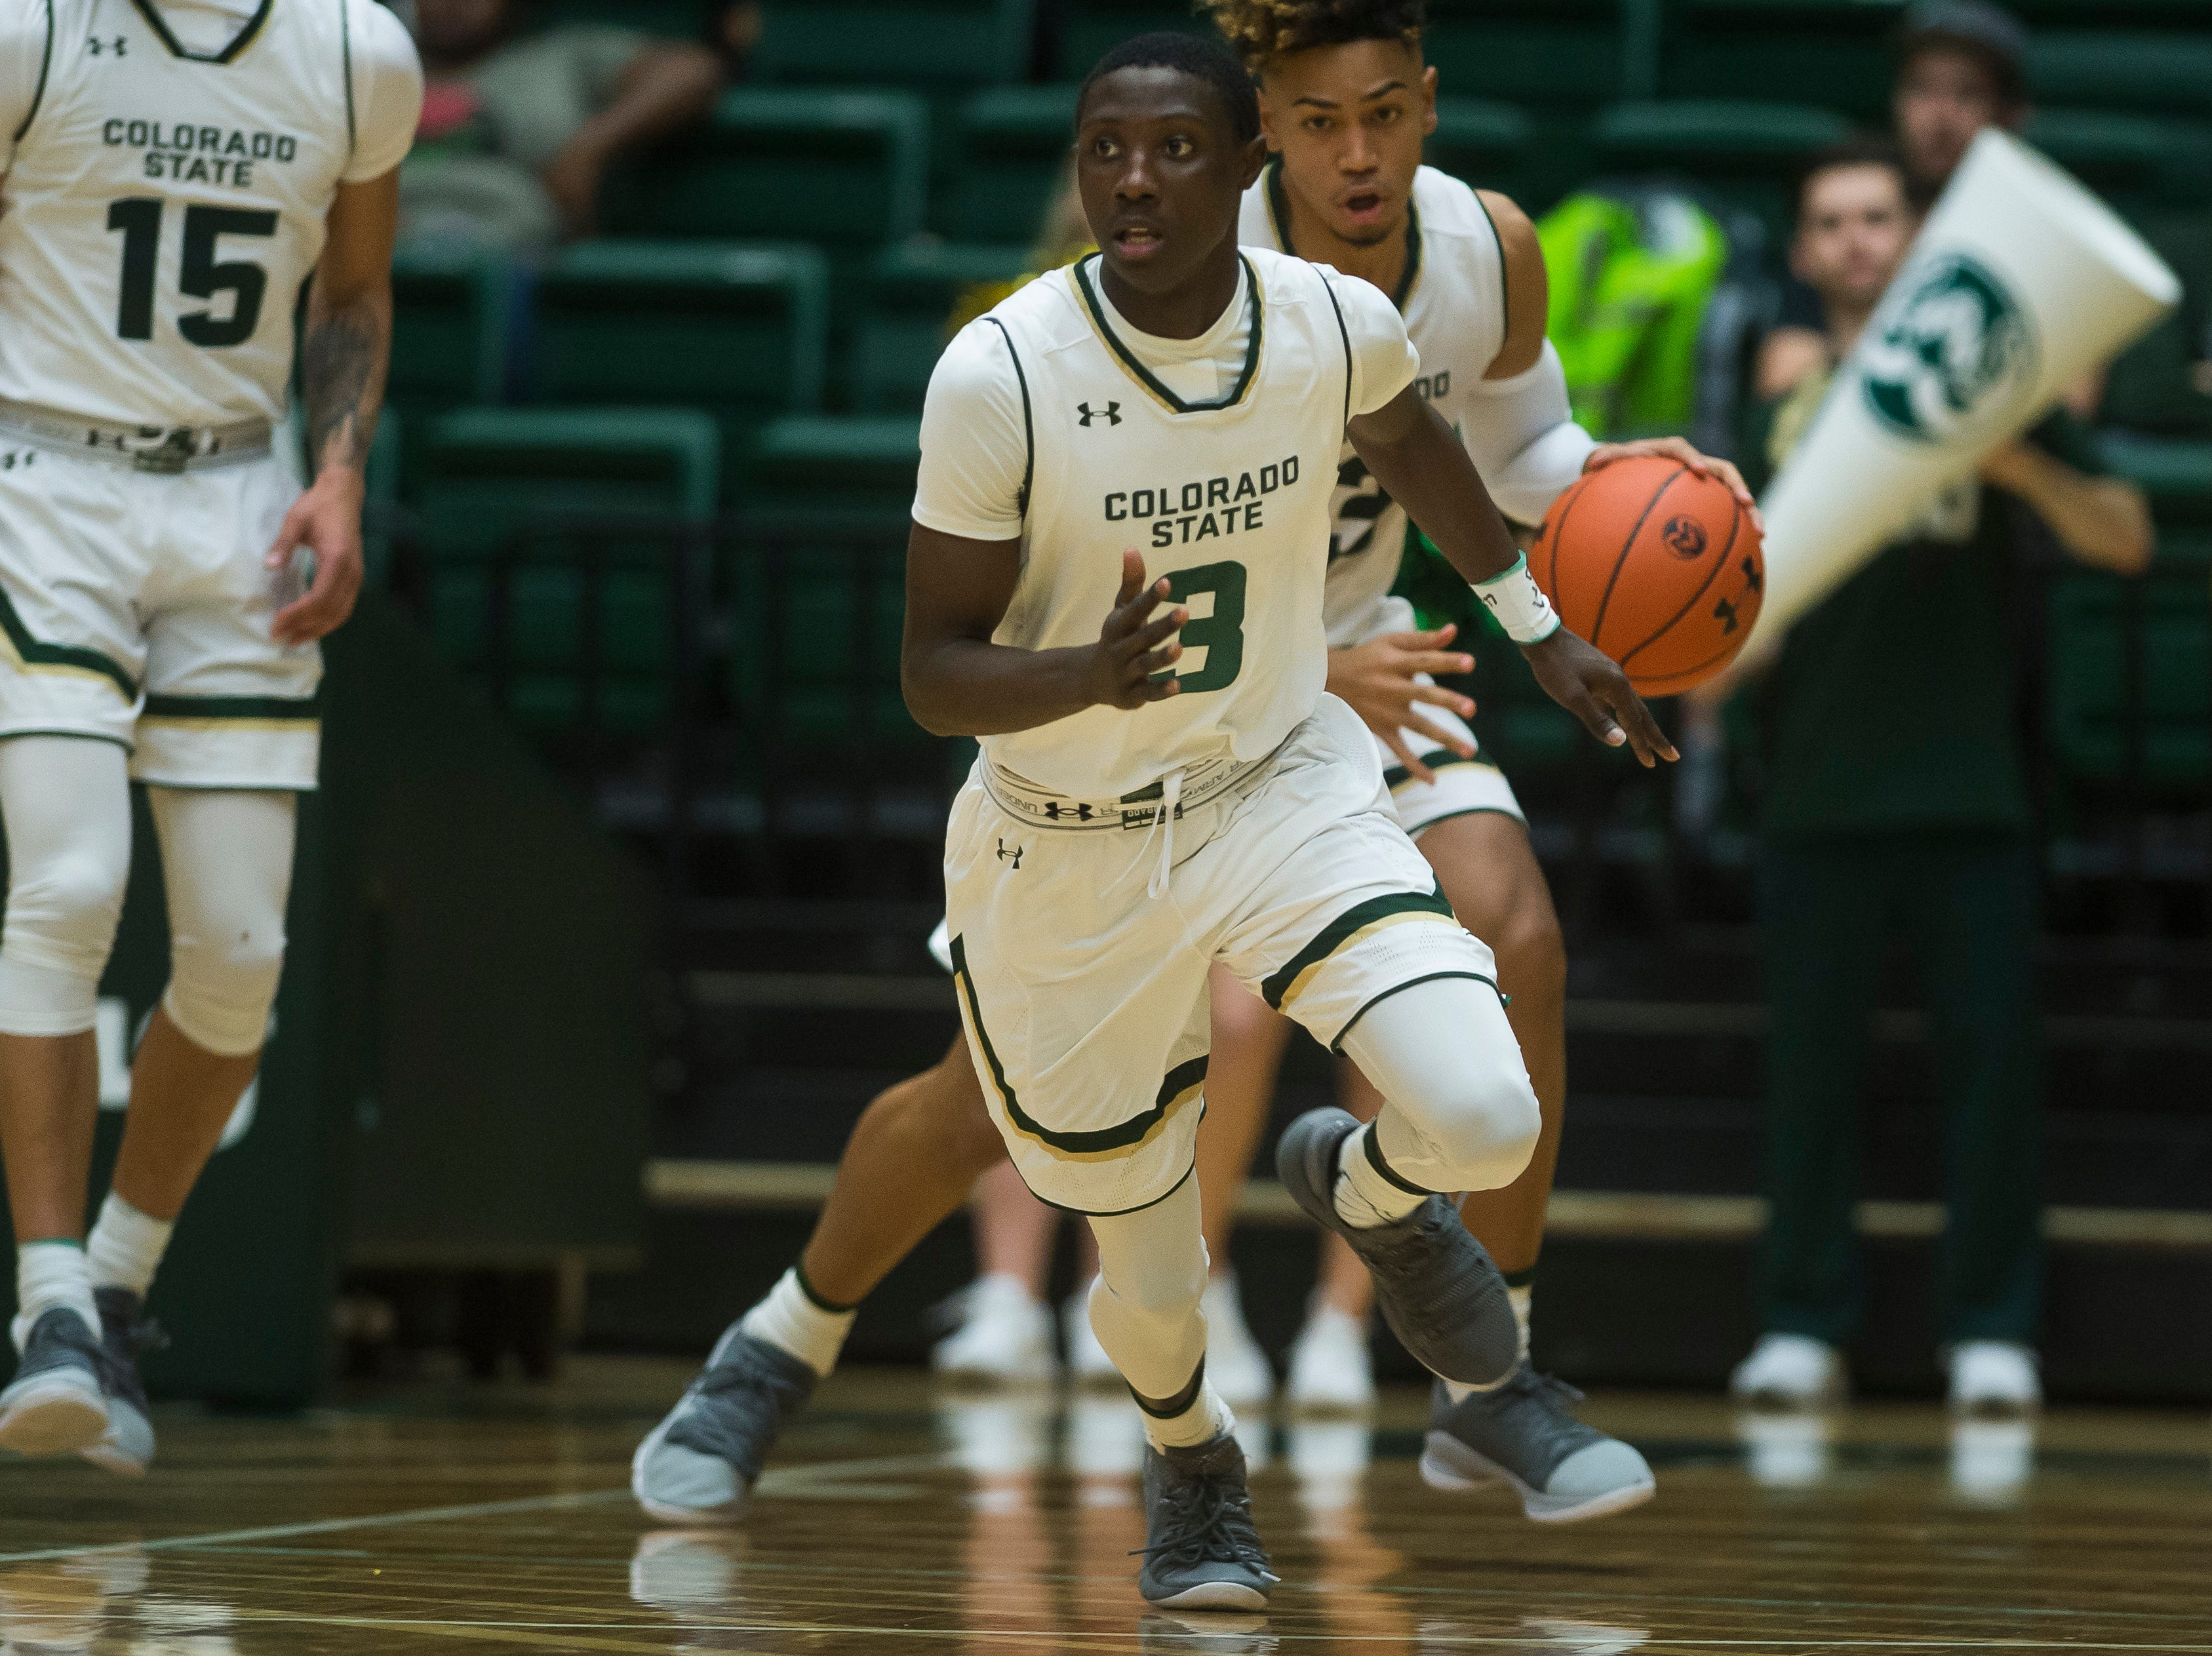 Colorado State University freshman guard Kendle Moore (3) takes the ball downcourt during a game against Colorado Christian University on Wednesday, Nov. 7, 2018, at Moby Arena in Fort Collins, Colo.